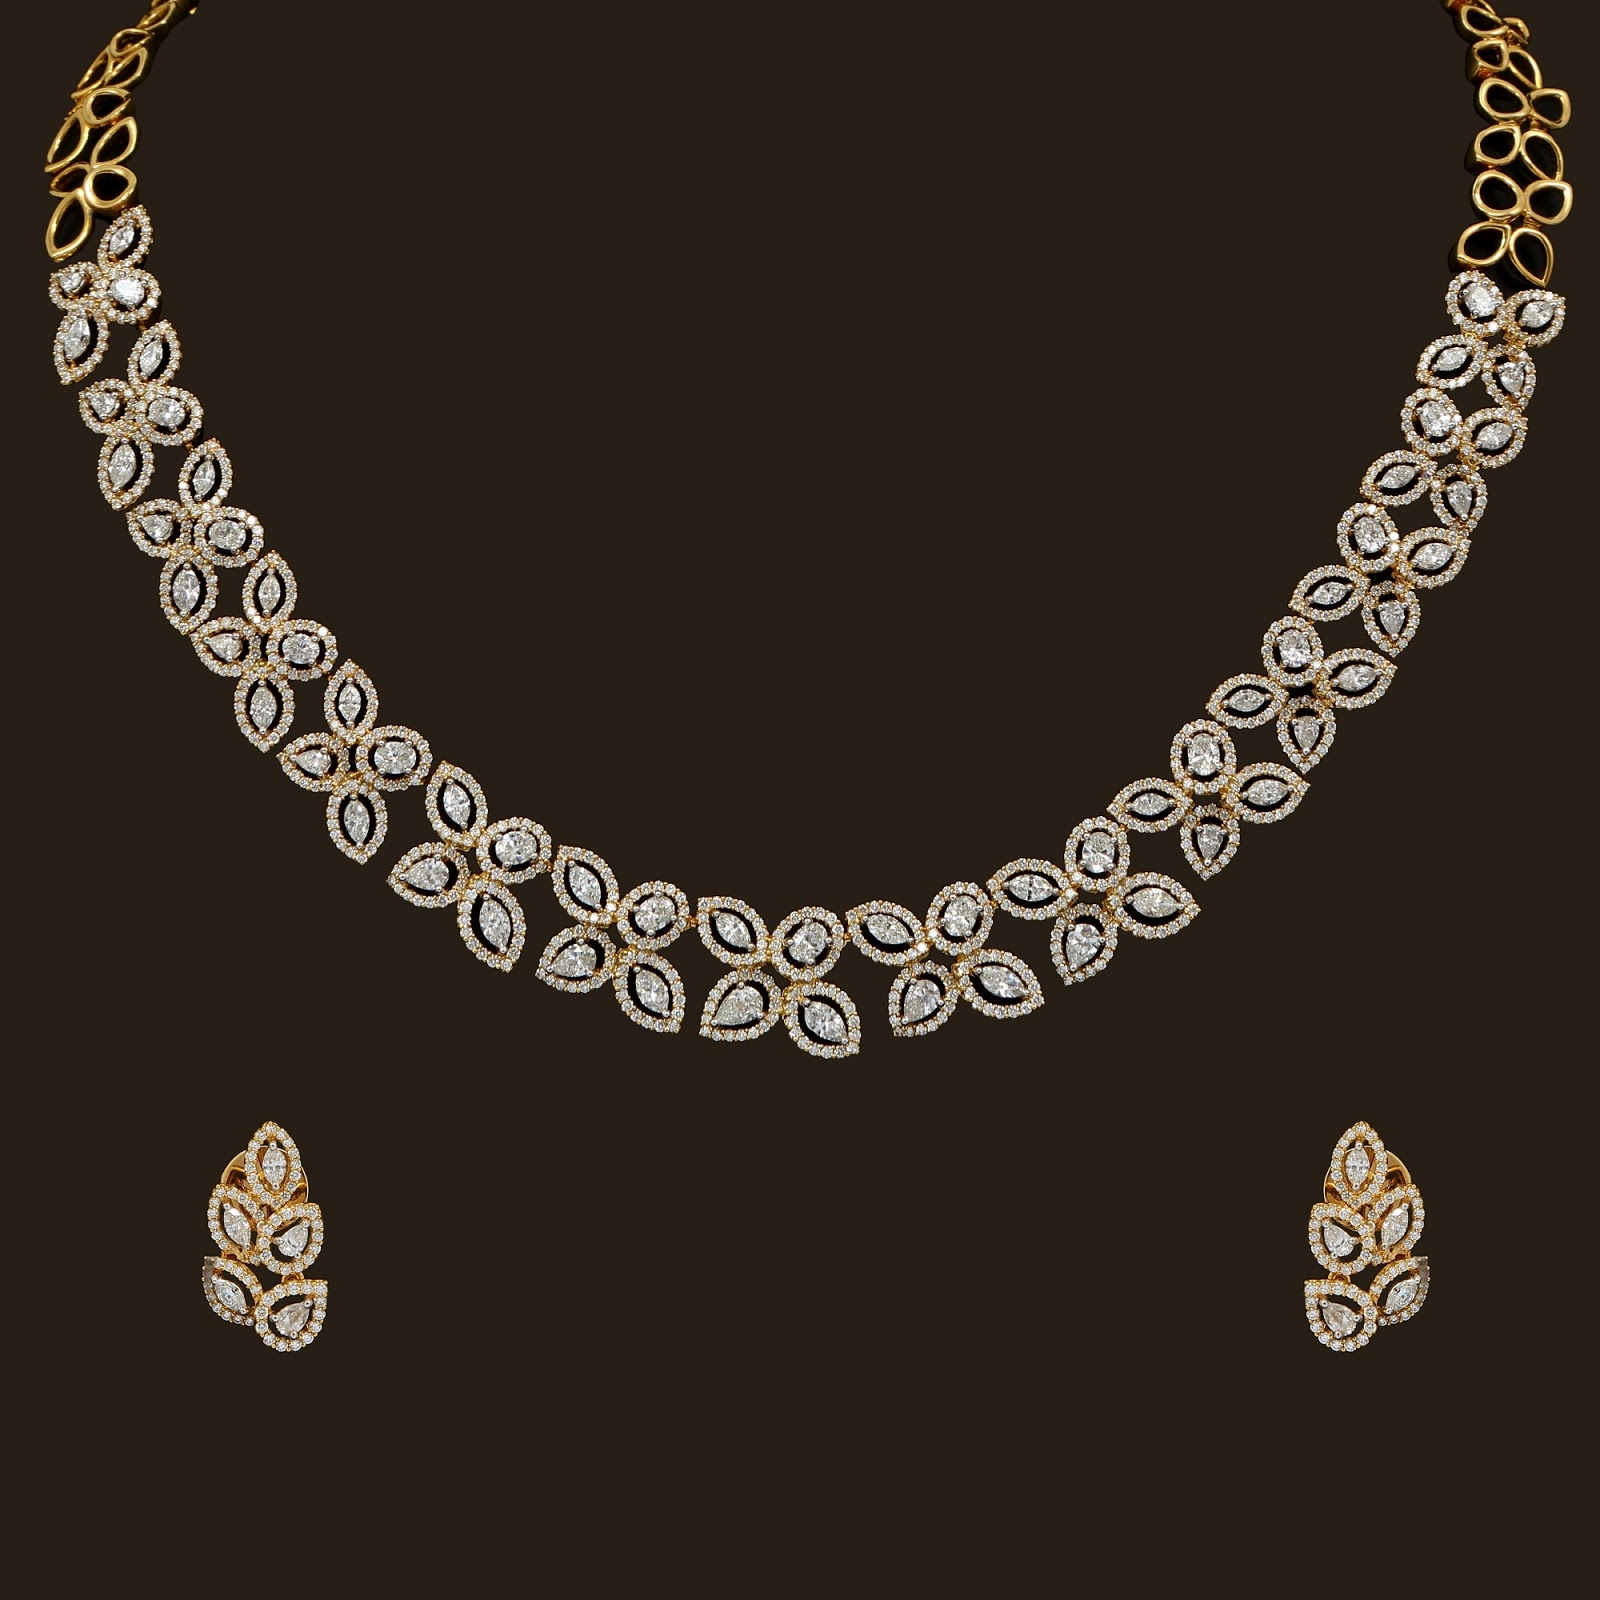 Vummidi Diamond Necklace models